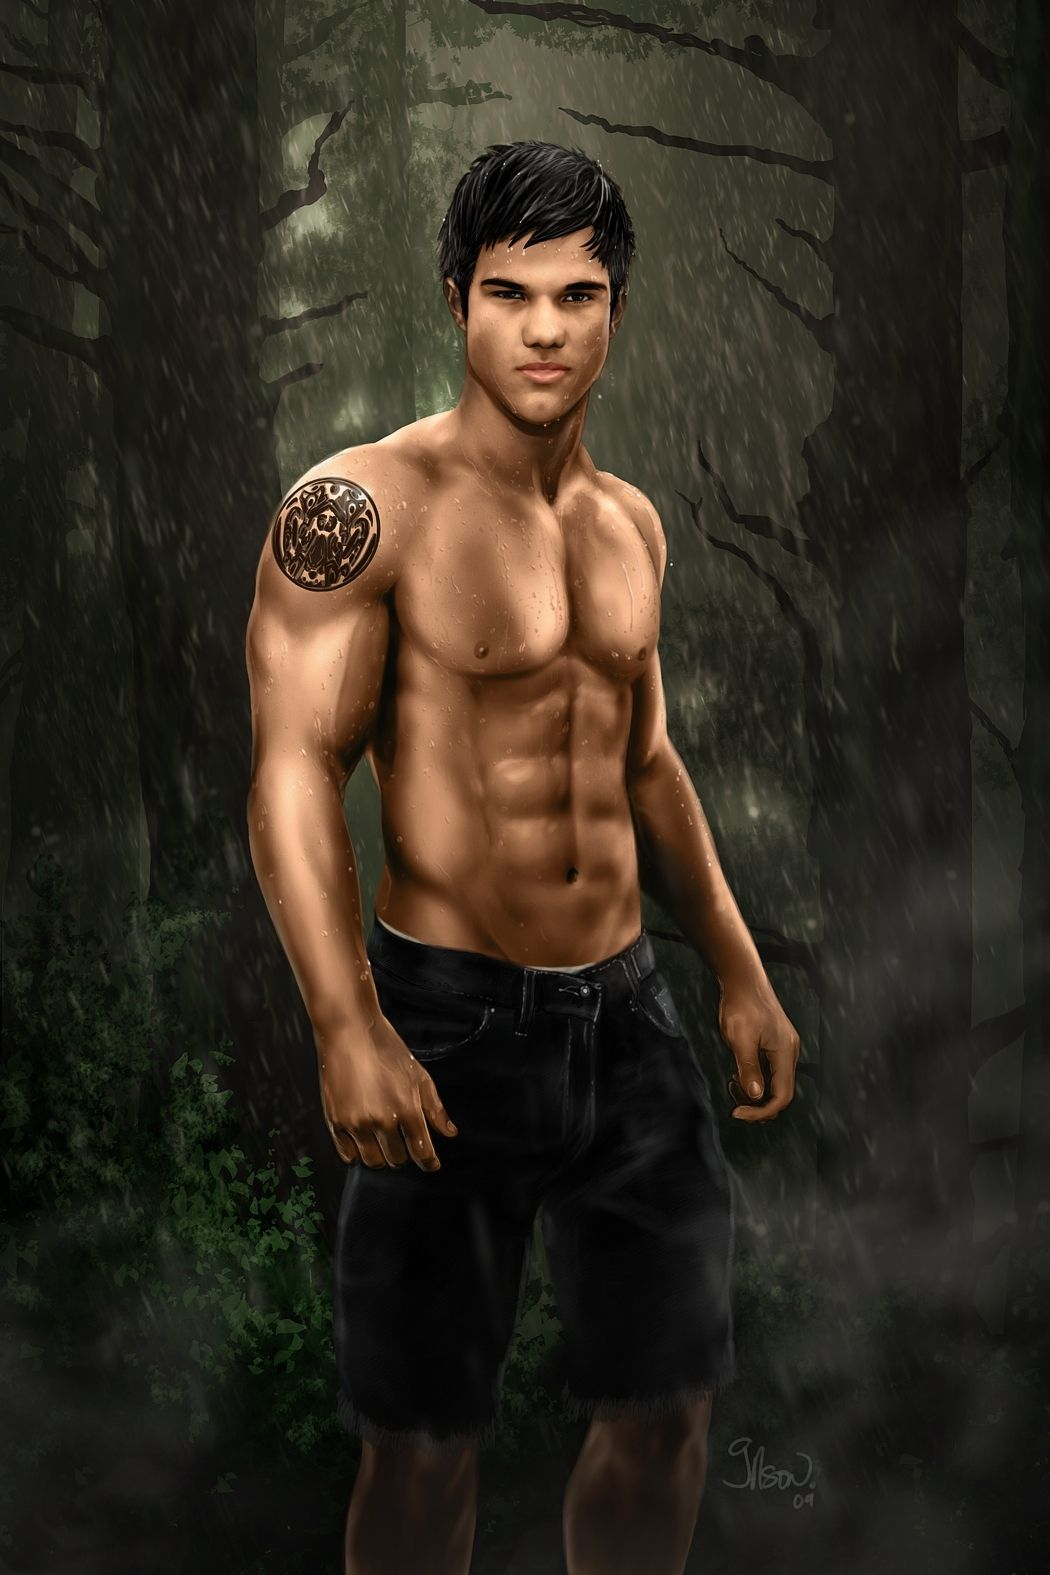 1050x1575 Taylor Lautner In Fan Creations - Jacob Taylor Lautner Abs ...